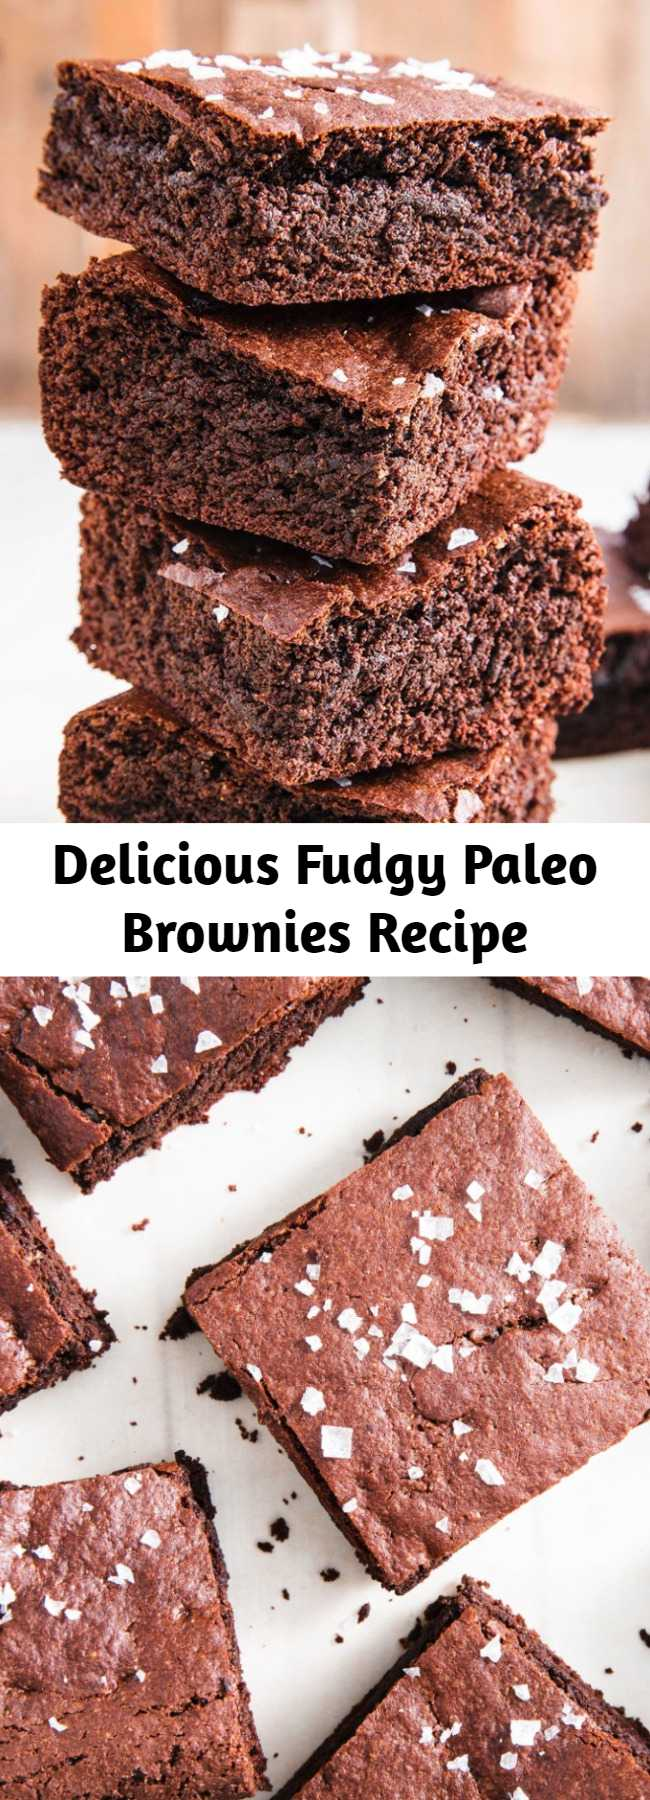 Delicious Fudgy Paleo Brownies Recipe - Yassss, brownies that are totally Paleo! Here's how to make the ultimate paleo-friendly dessert. Made with almond flour, almond butter, and coconut sugar, these Paleo Brownies are delicious. These are more than just an alternative, but a delicious brownie that also happens to be Paleo approved!